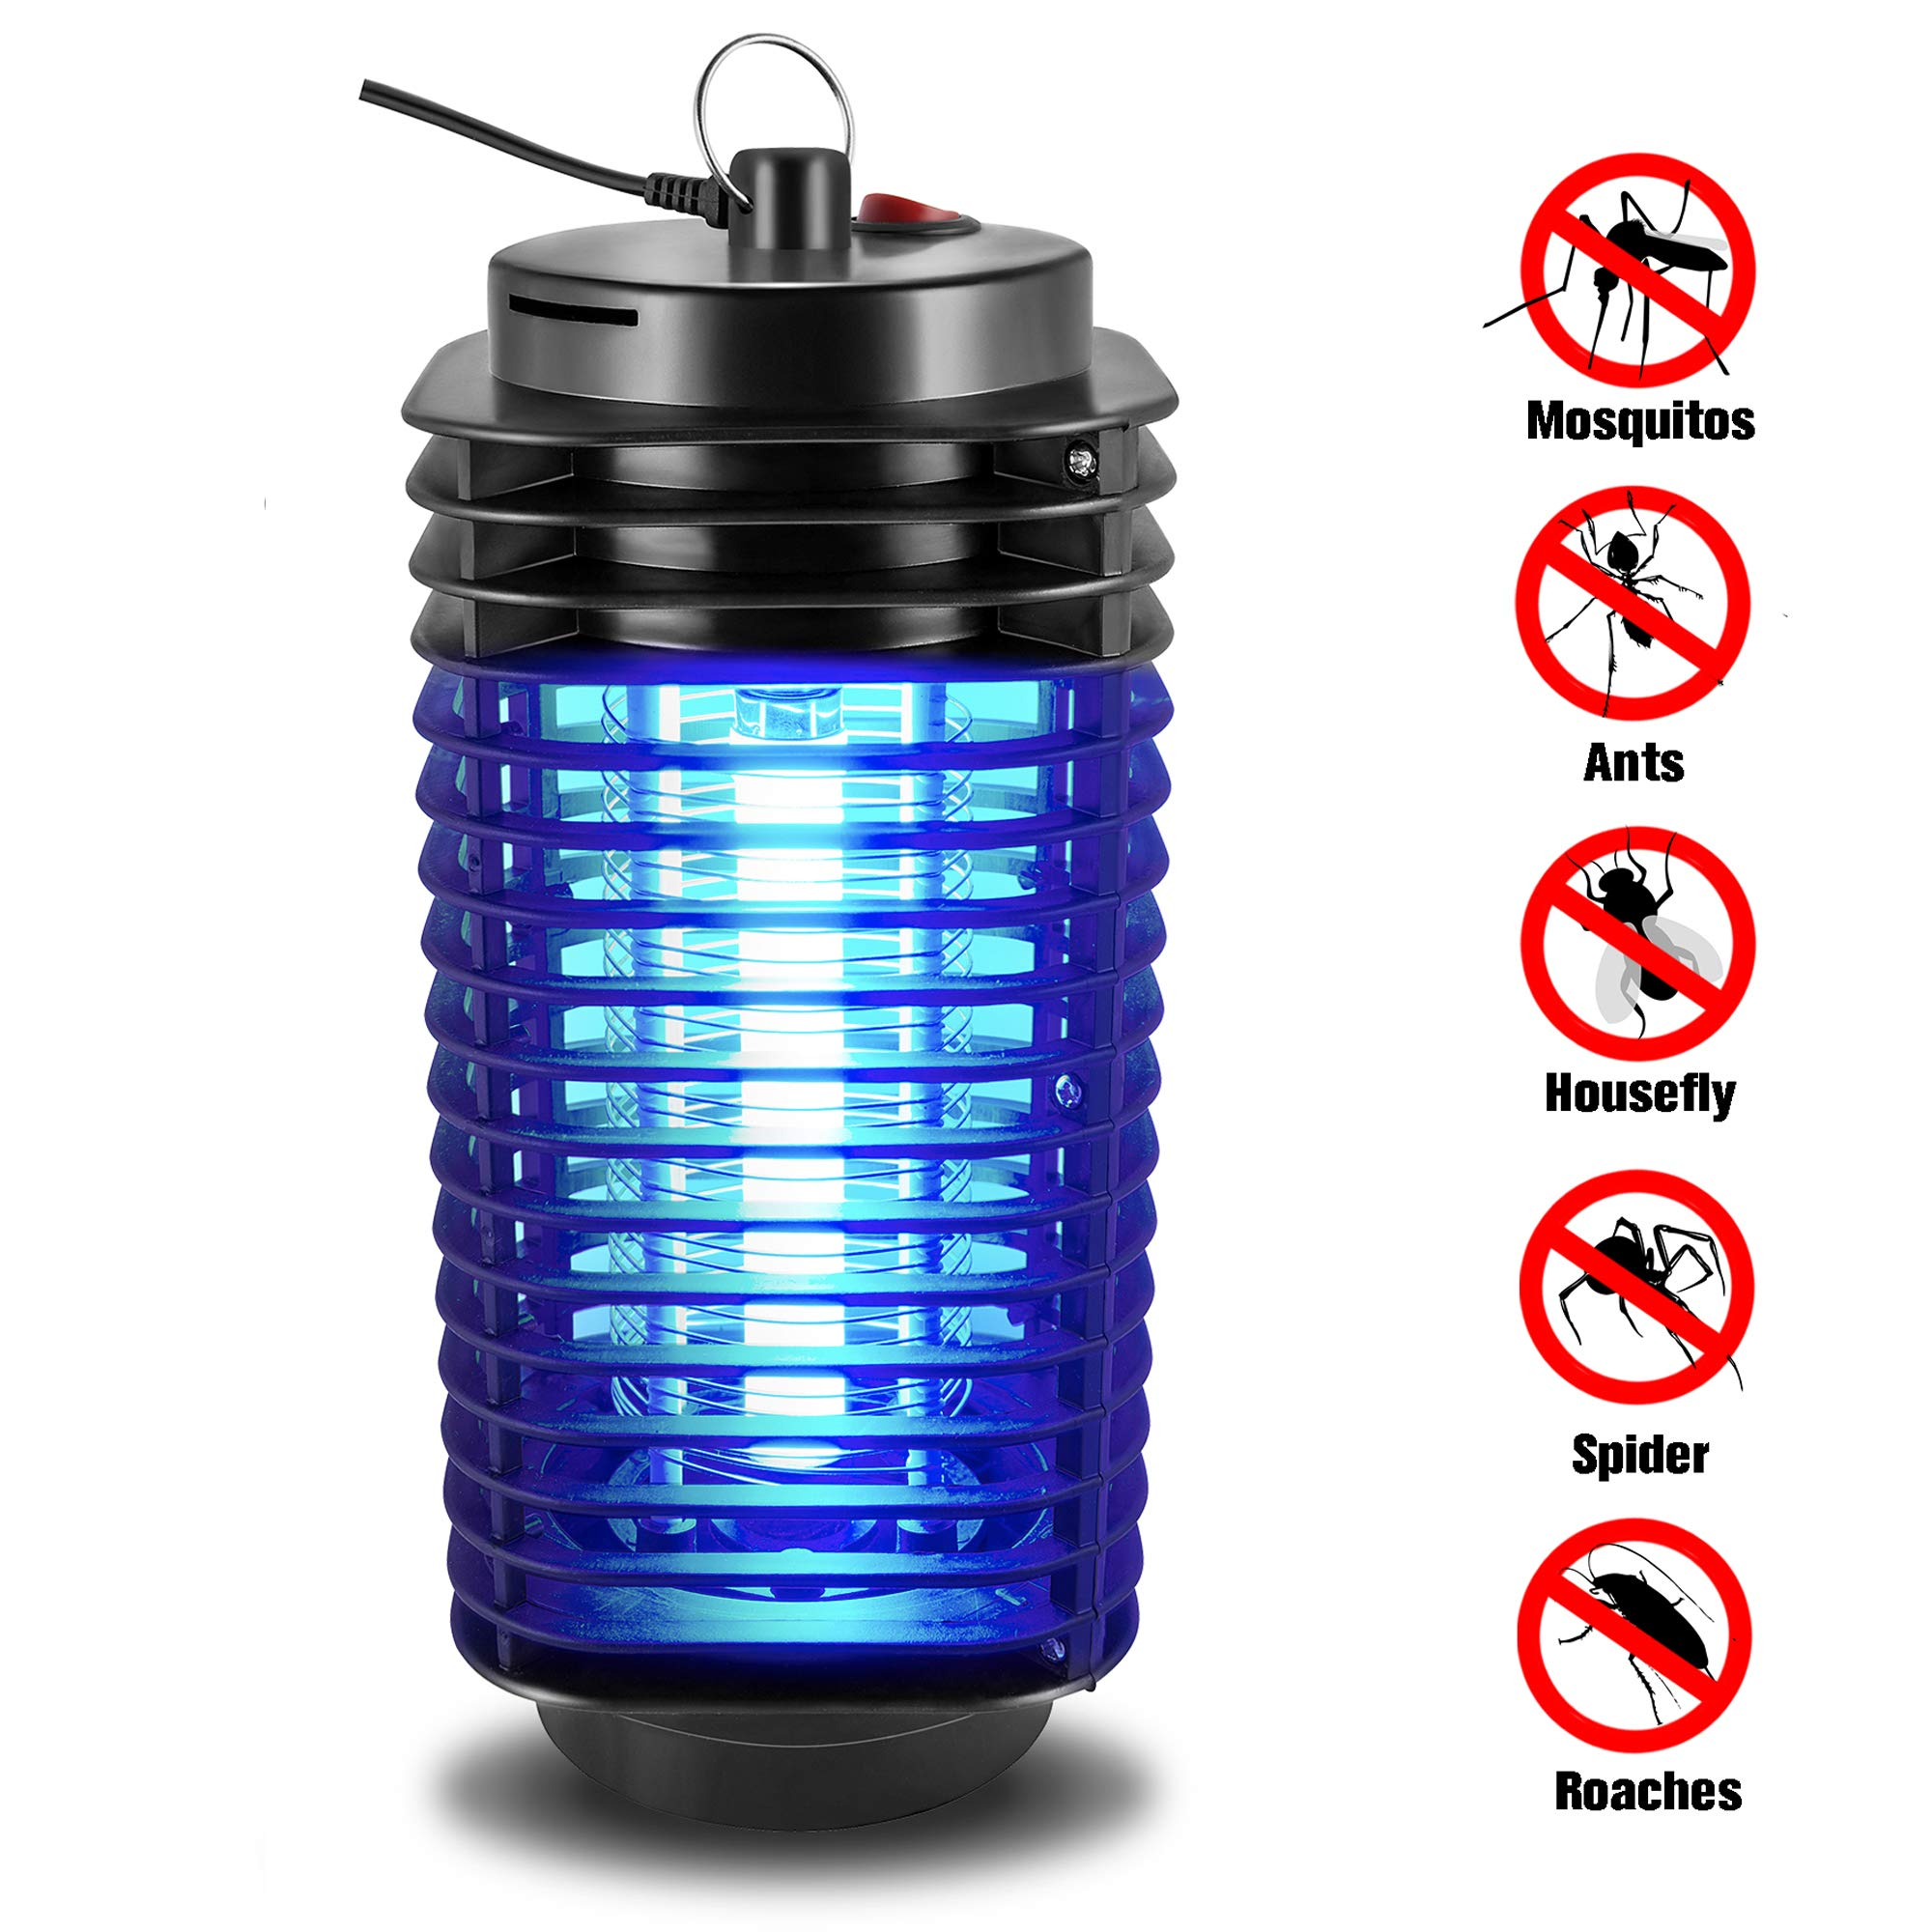 XMSTORE Bug Zapper, Electric Flying Zapper with UV Light, Portable Standing or Hanging for Indoor Use by XMSTORE